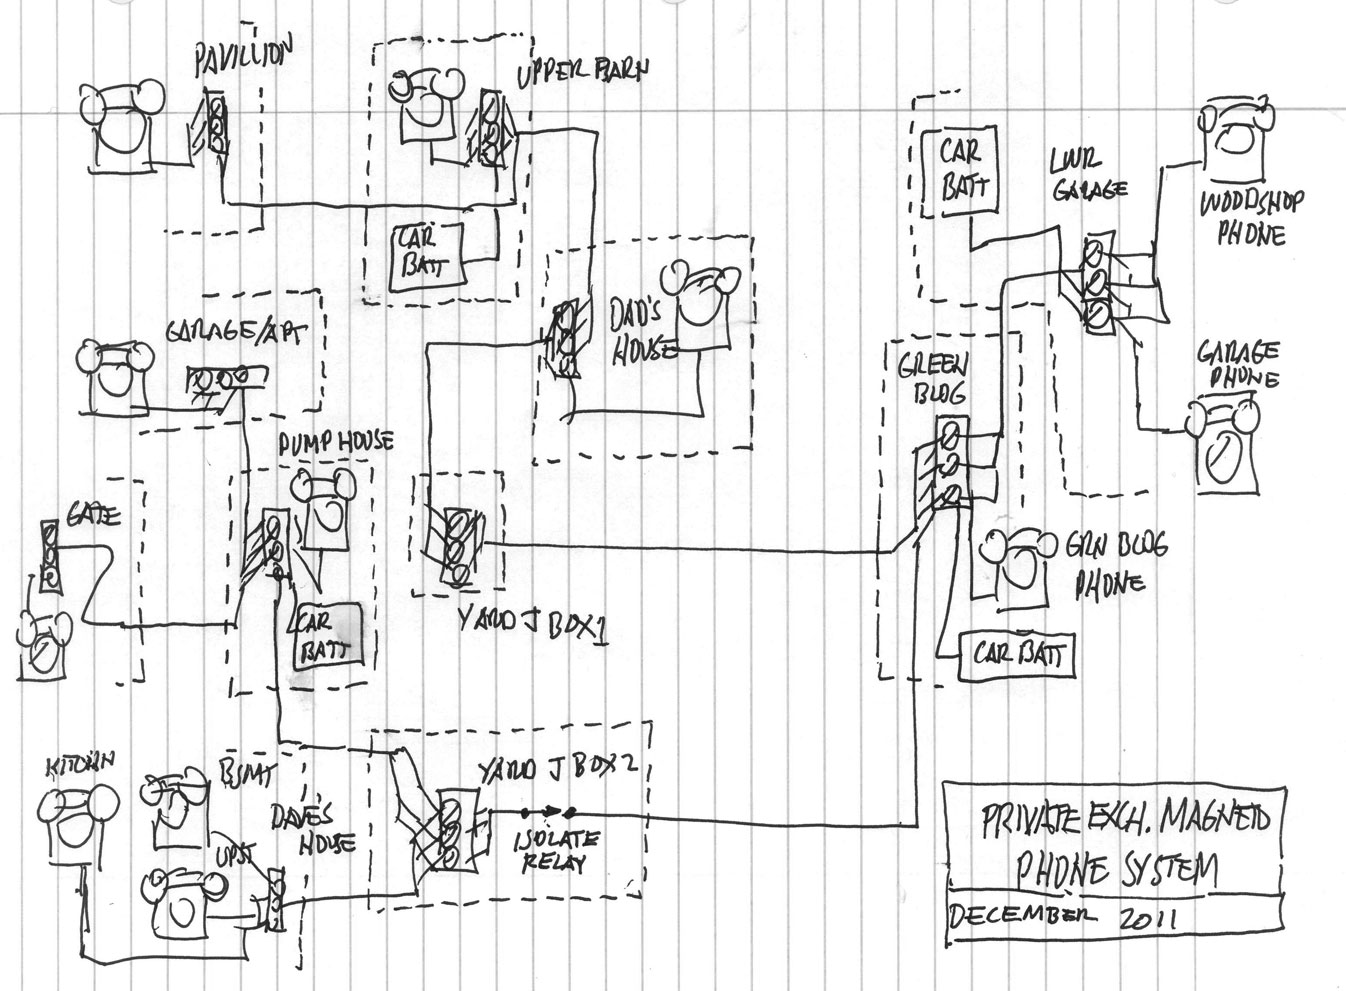 phonesysdiag leich phone crank telephone wiring diagrams at gsmx.co